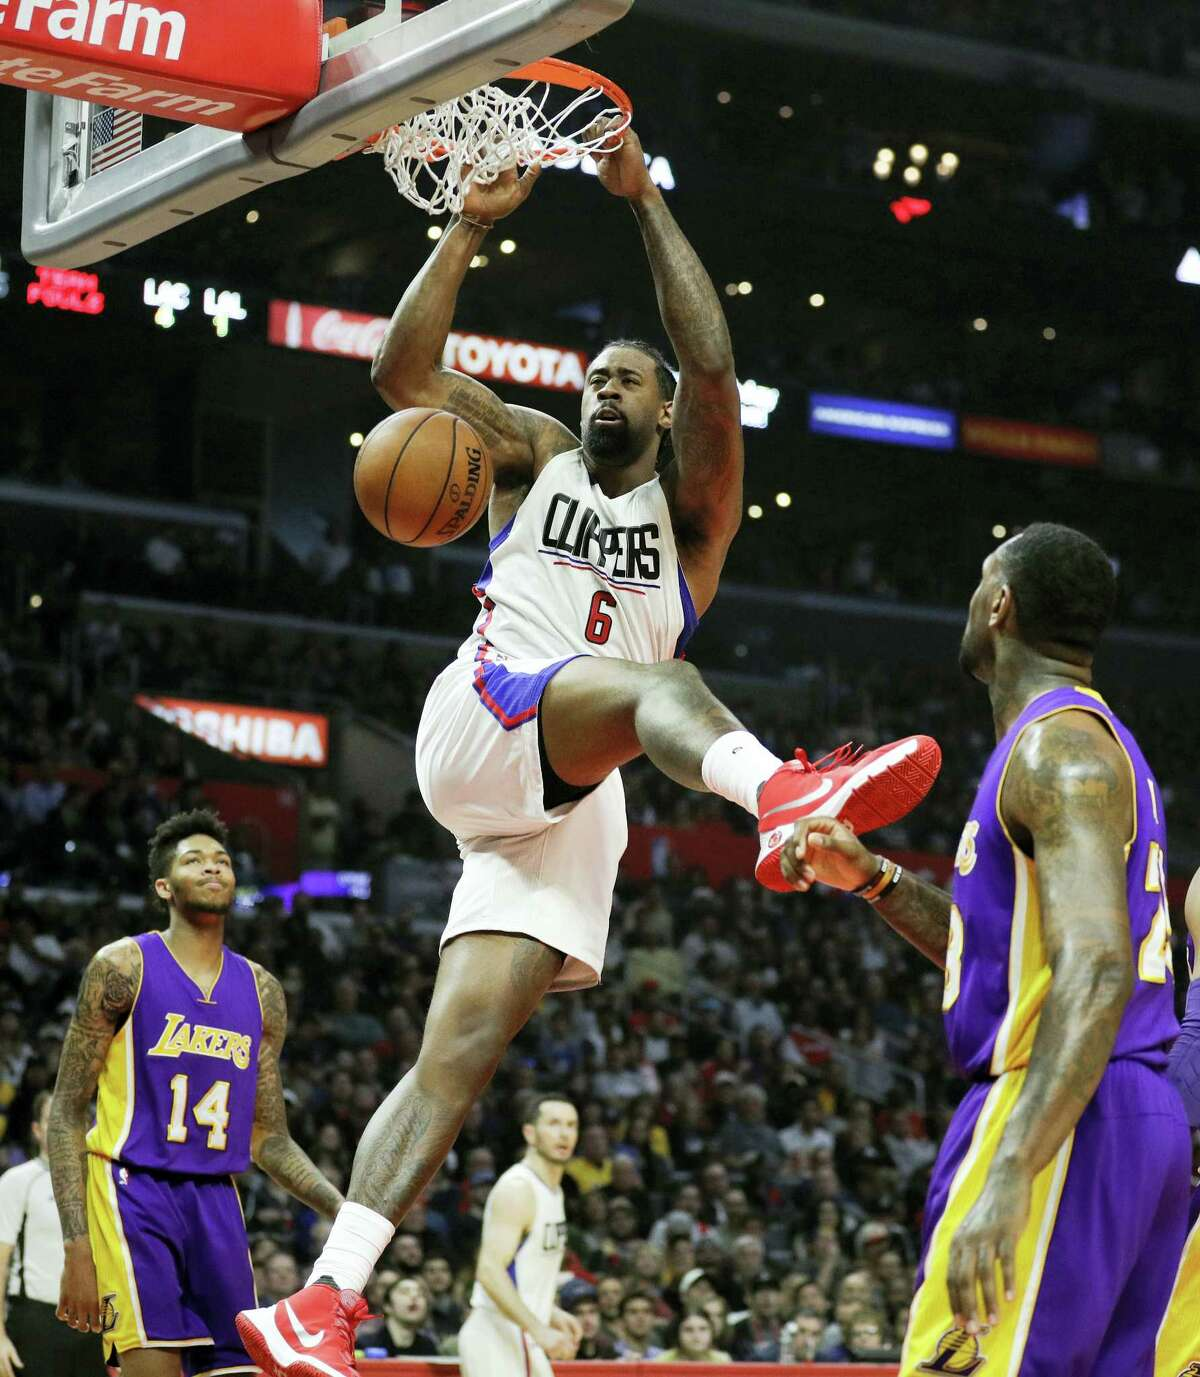 Los Angeles Clippers' DeAndre Jordan, center, dunks as Los Angeles Lakers' Brandon Ingram, background left, and Tarik Black watch during the first half of an NBA basketball game on Jan. 14, 2017 in Los Angeles.